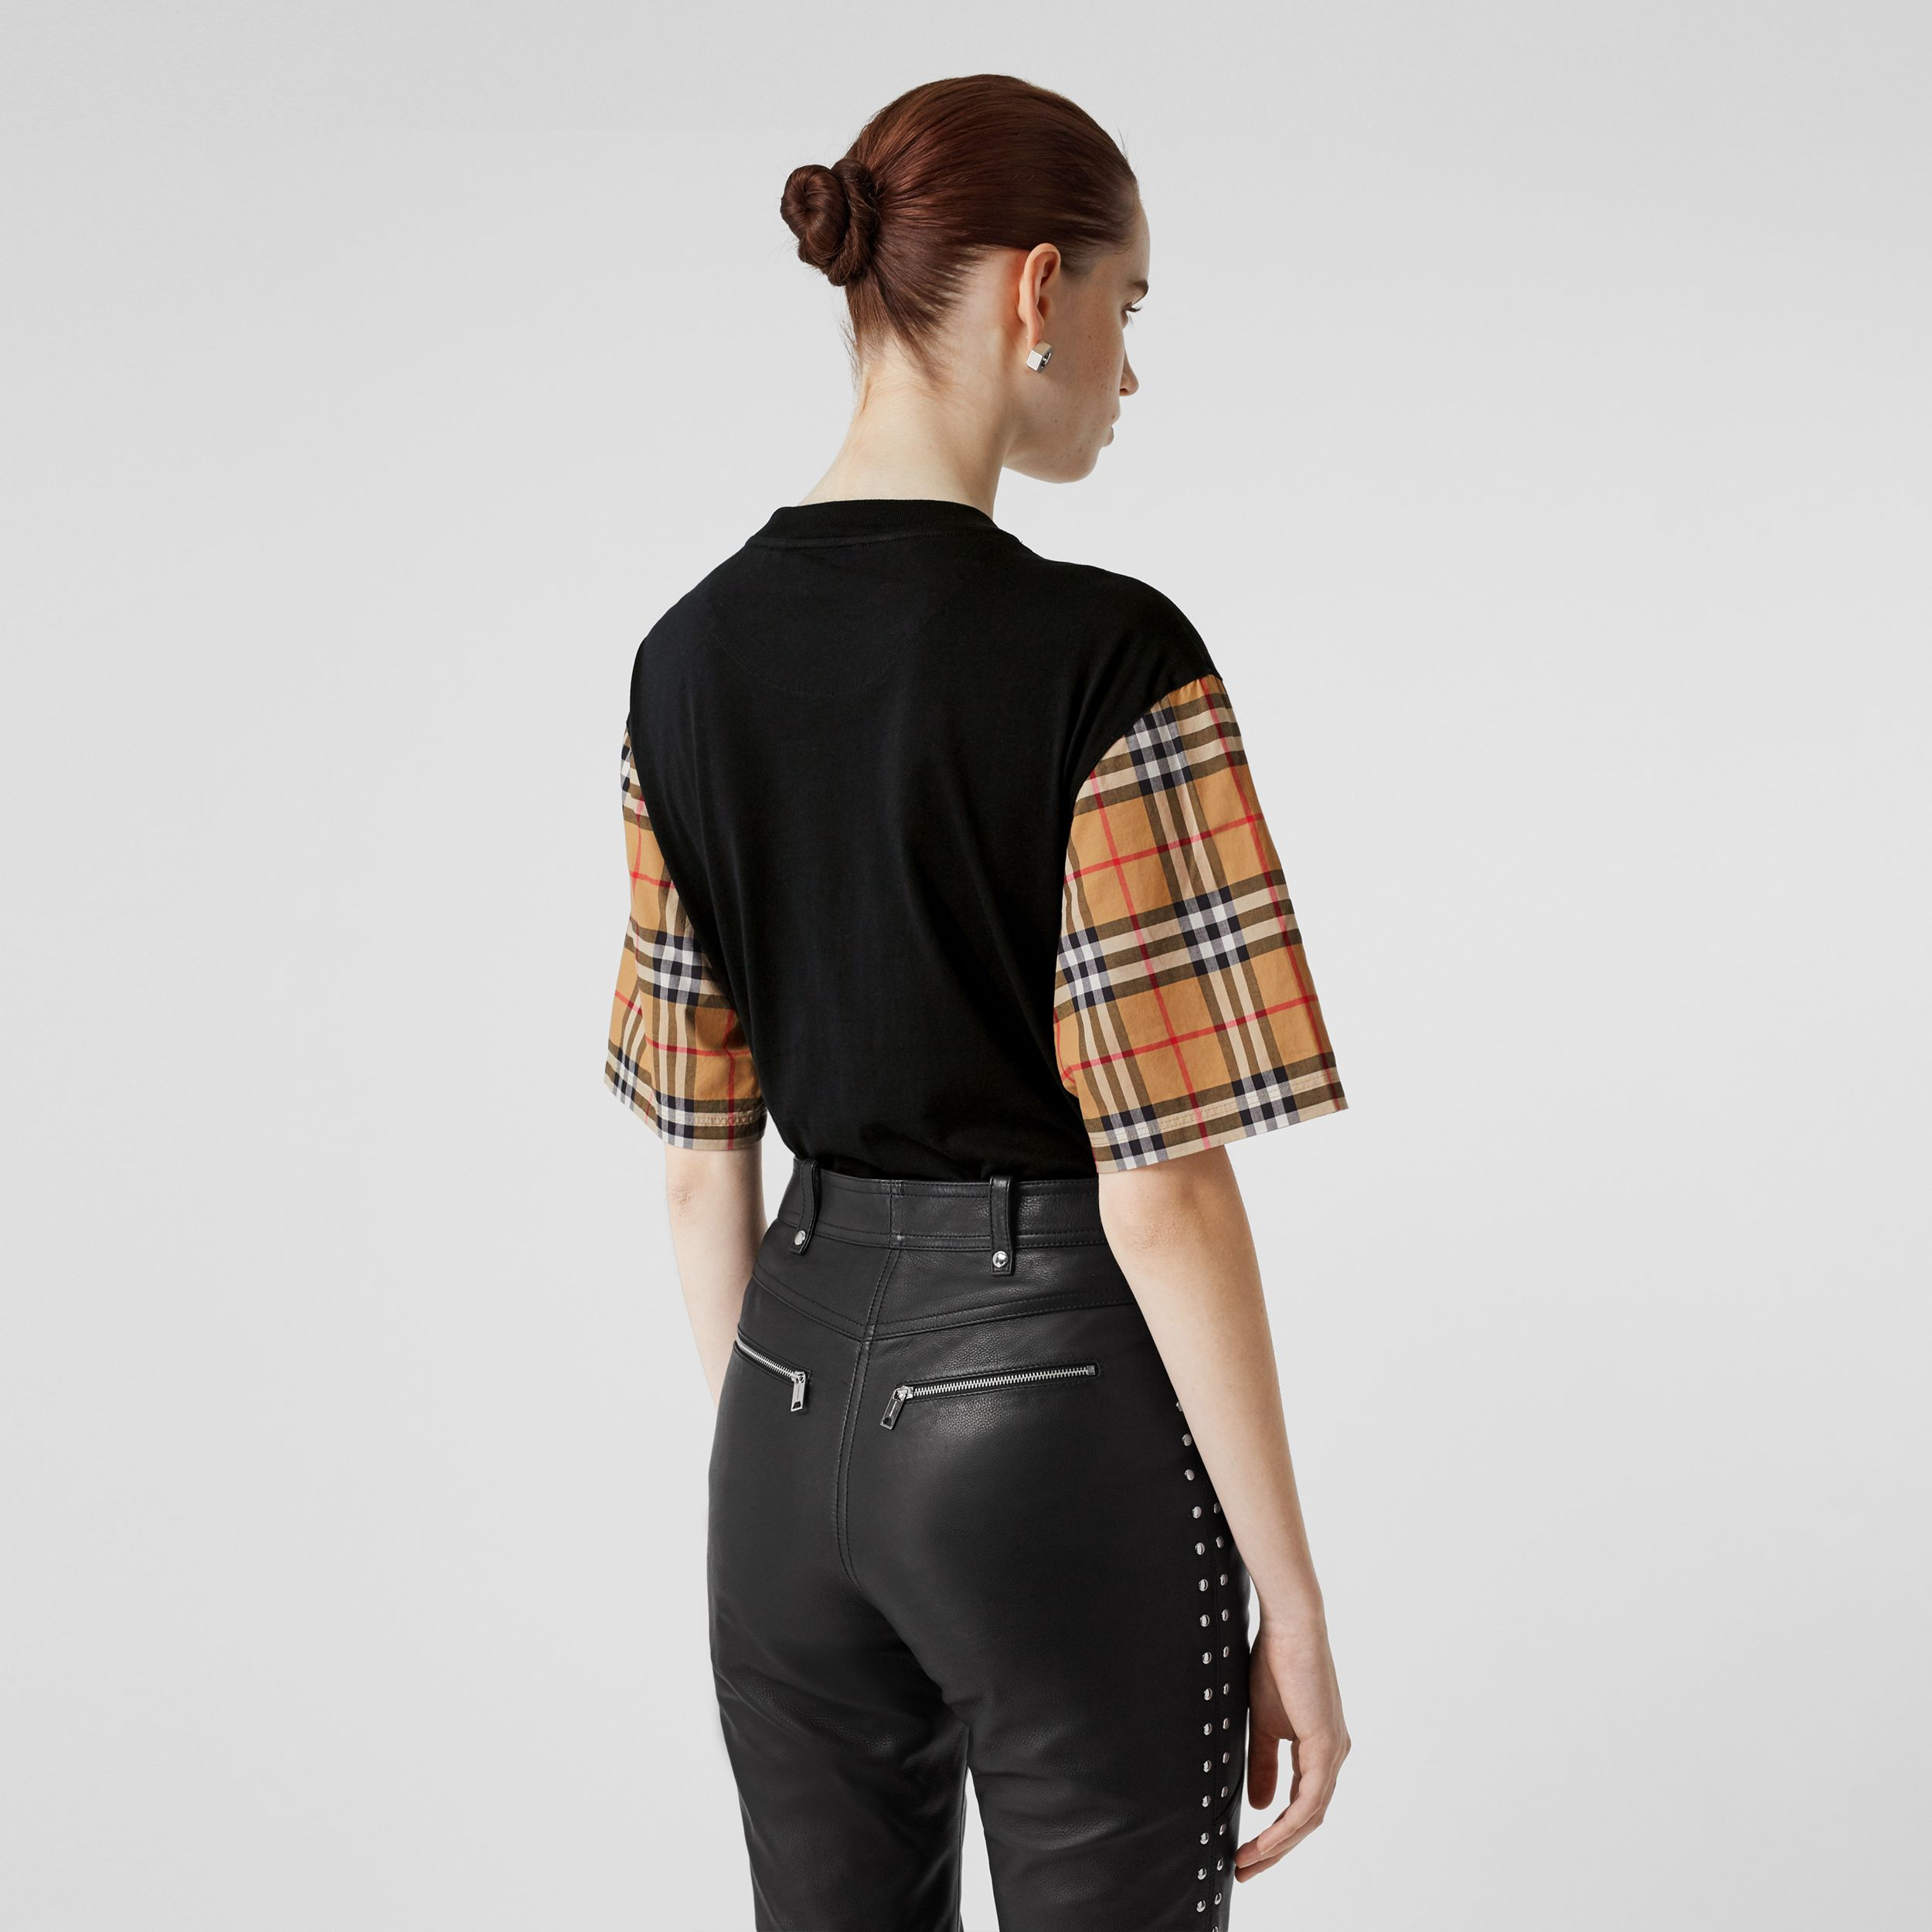 Vintage Check Detail Cotton T-shirt in Black - Women | Burberry - 3